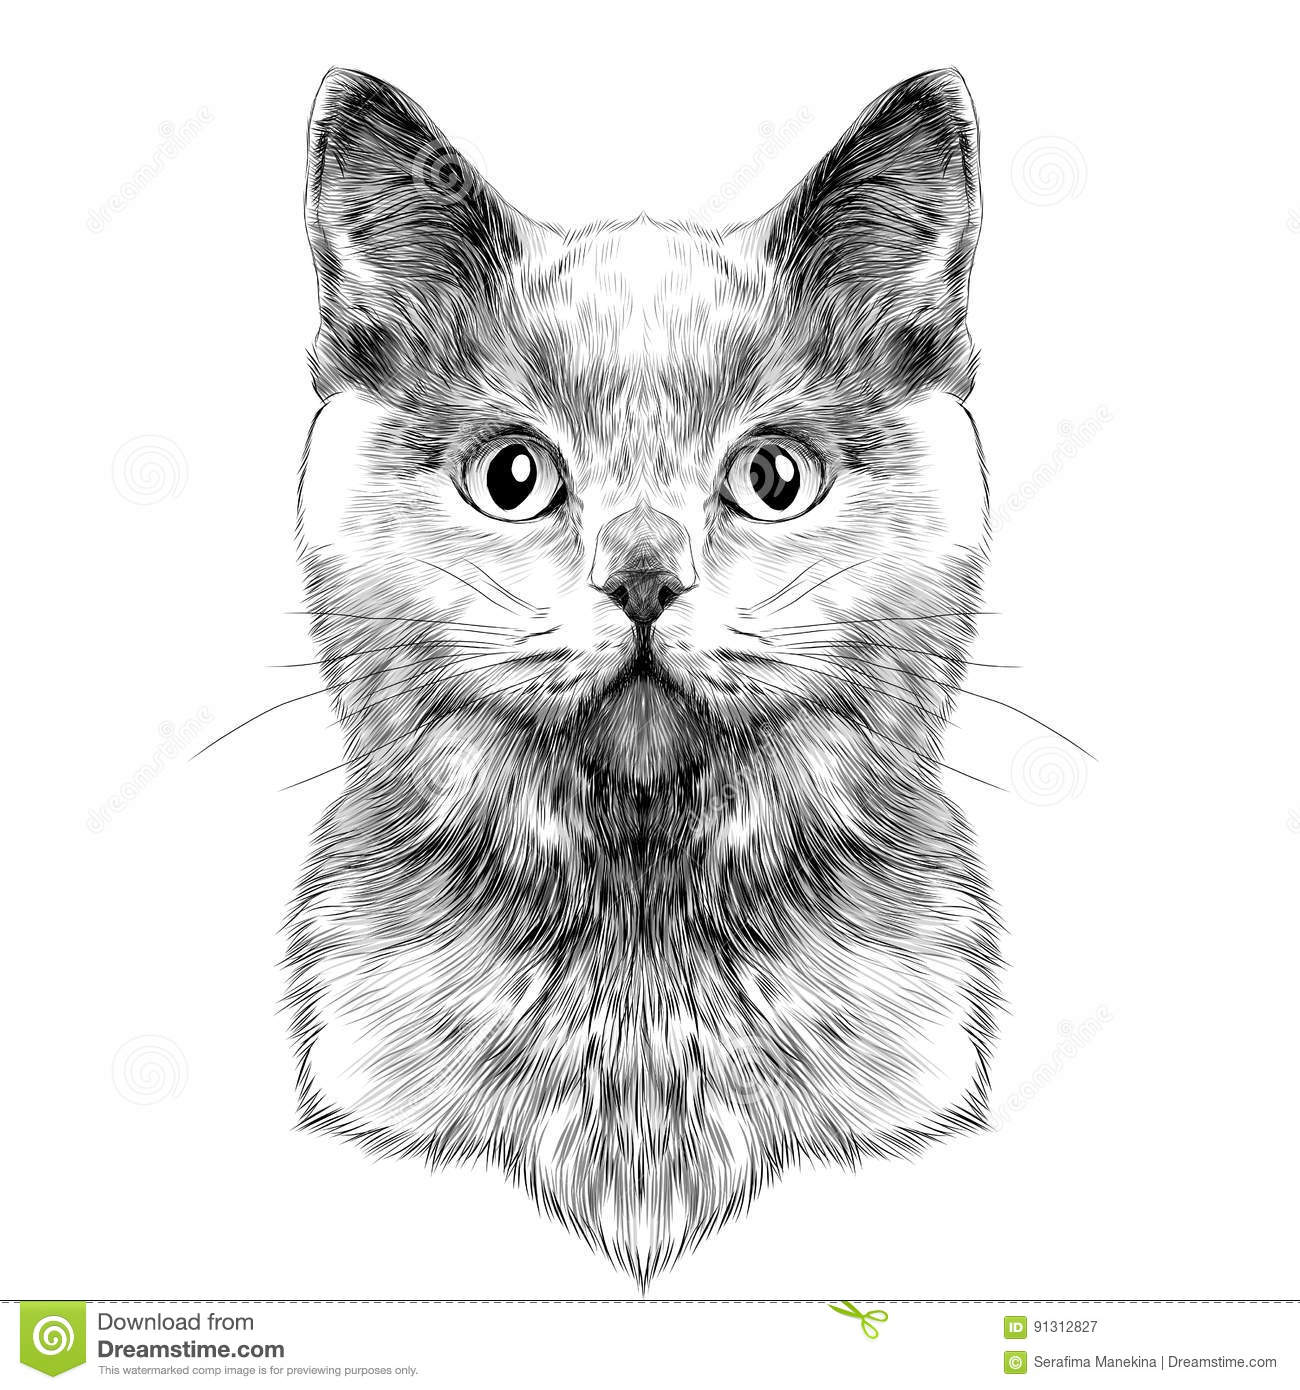 Cat Face Sketch Vector Stock Vector Illustration Of Shorthair 91312827